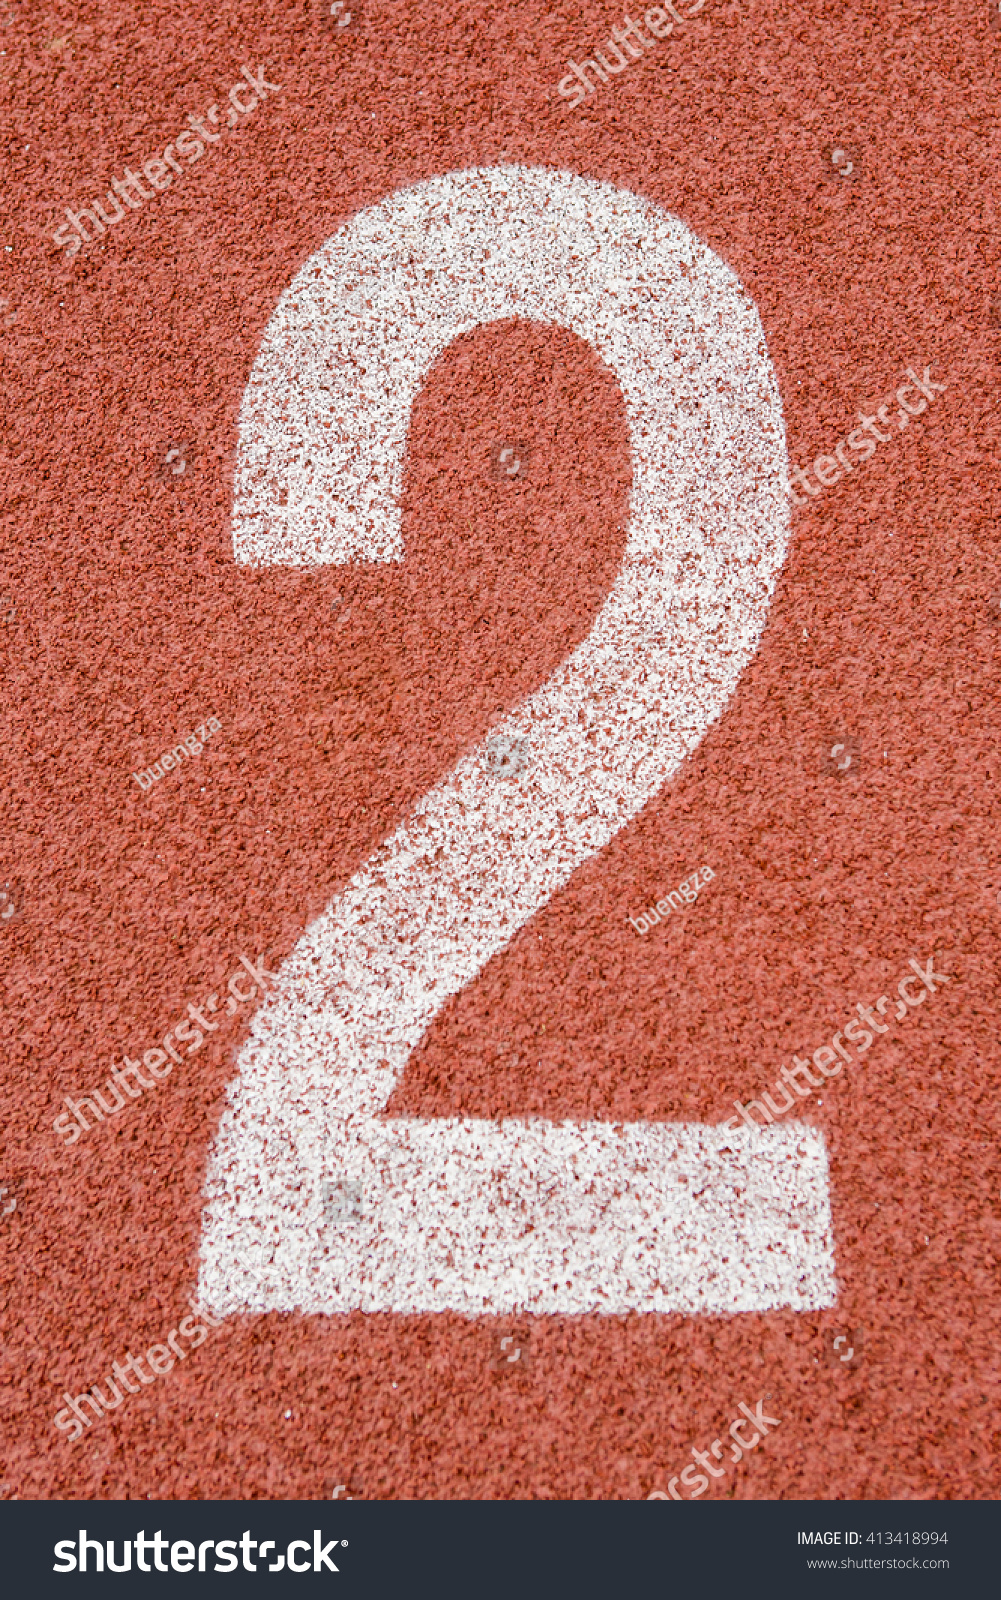 number two on start running track stock photo edit now 413418994